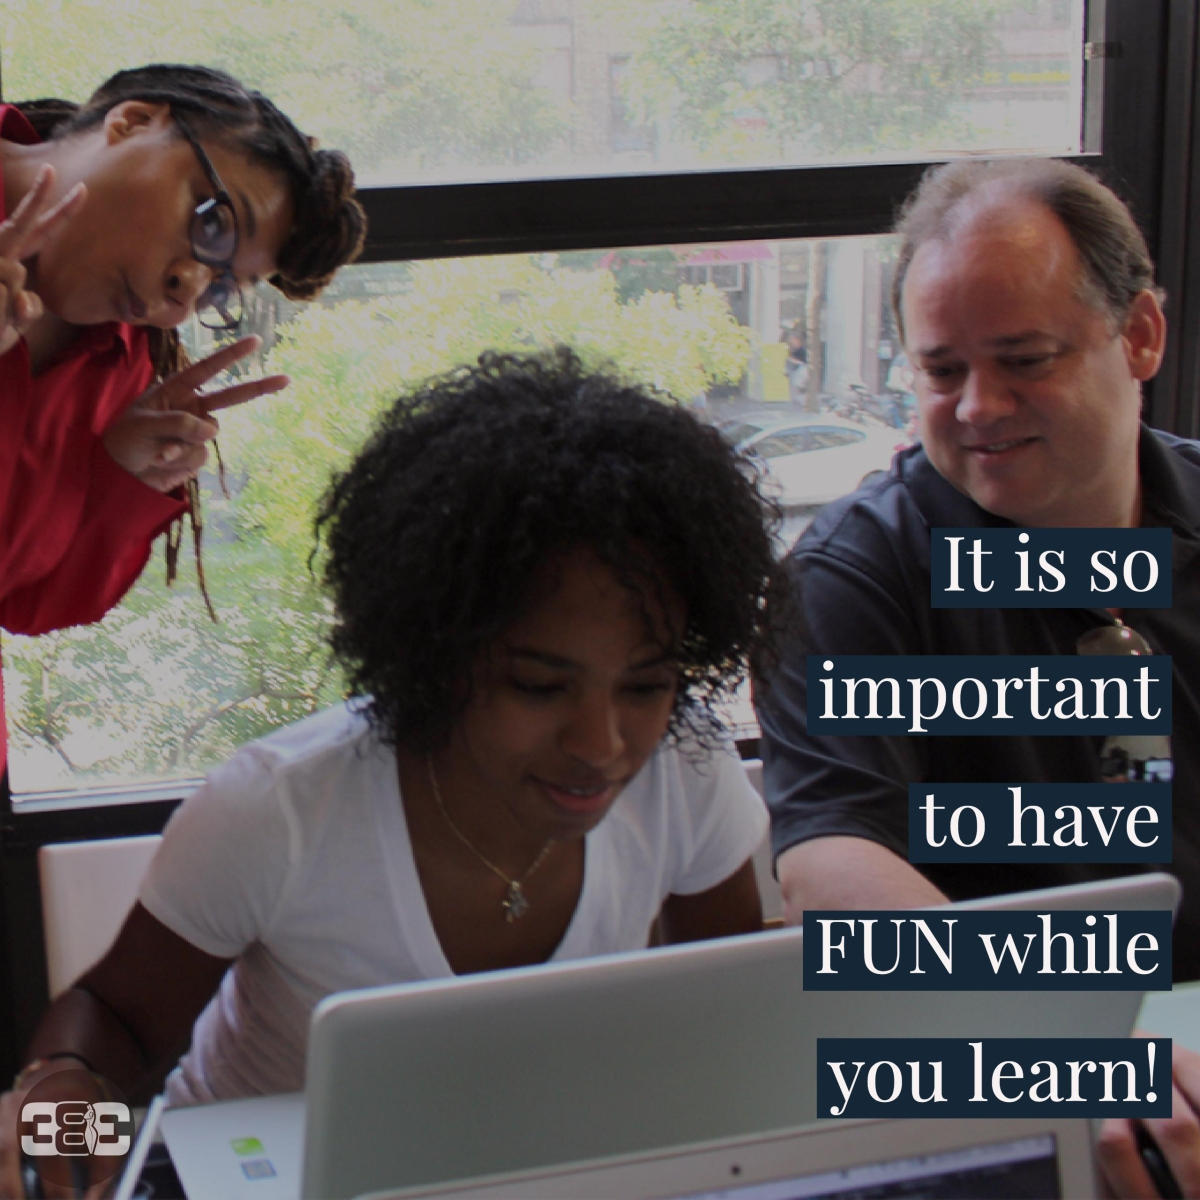 Make Learning Fun!